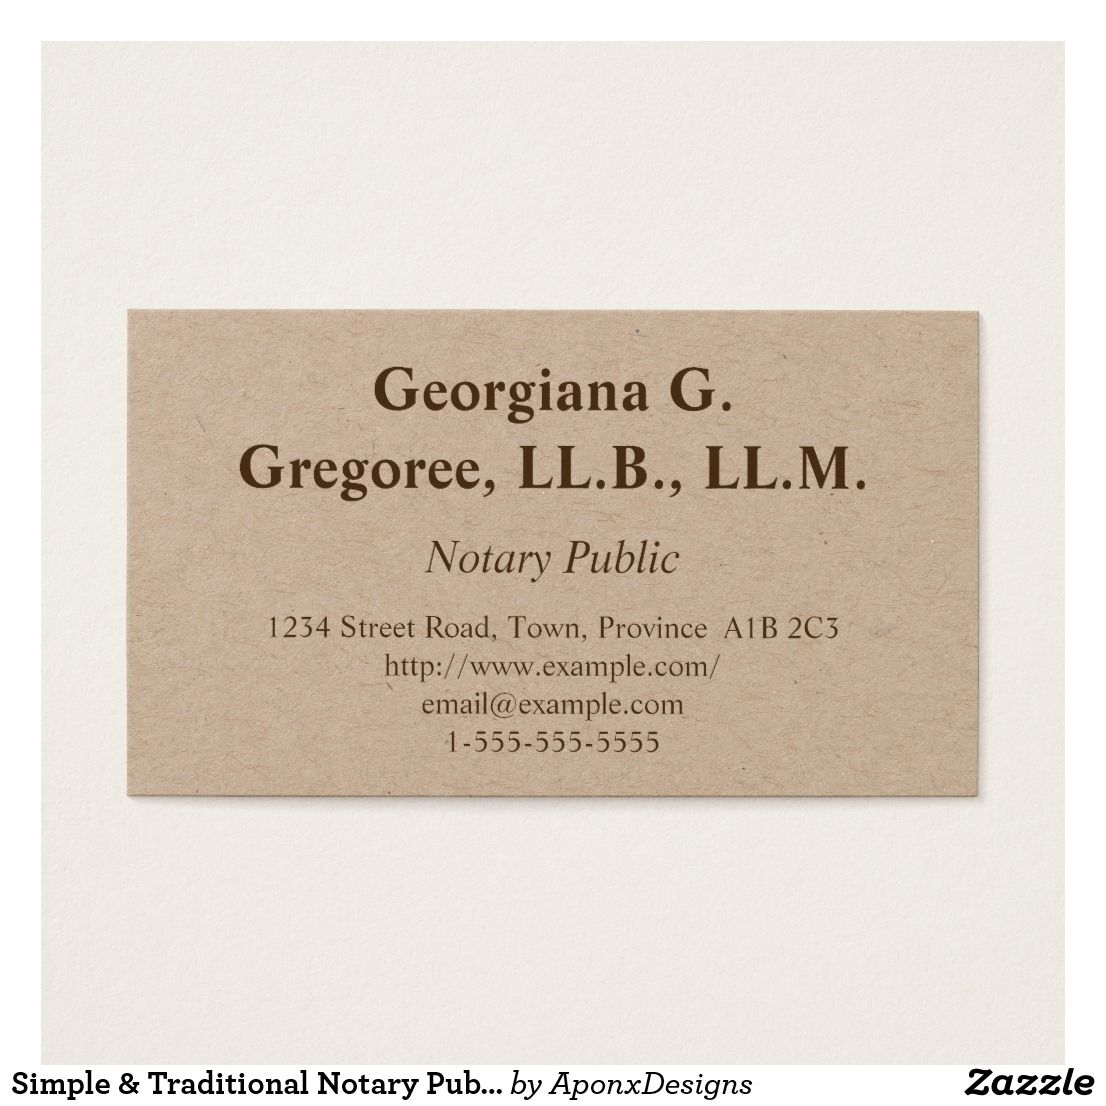 Simple Traditional Notary Public Business Card Zazzle Com Notary Public Business Printing Business Cards Notary Public